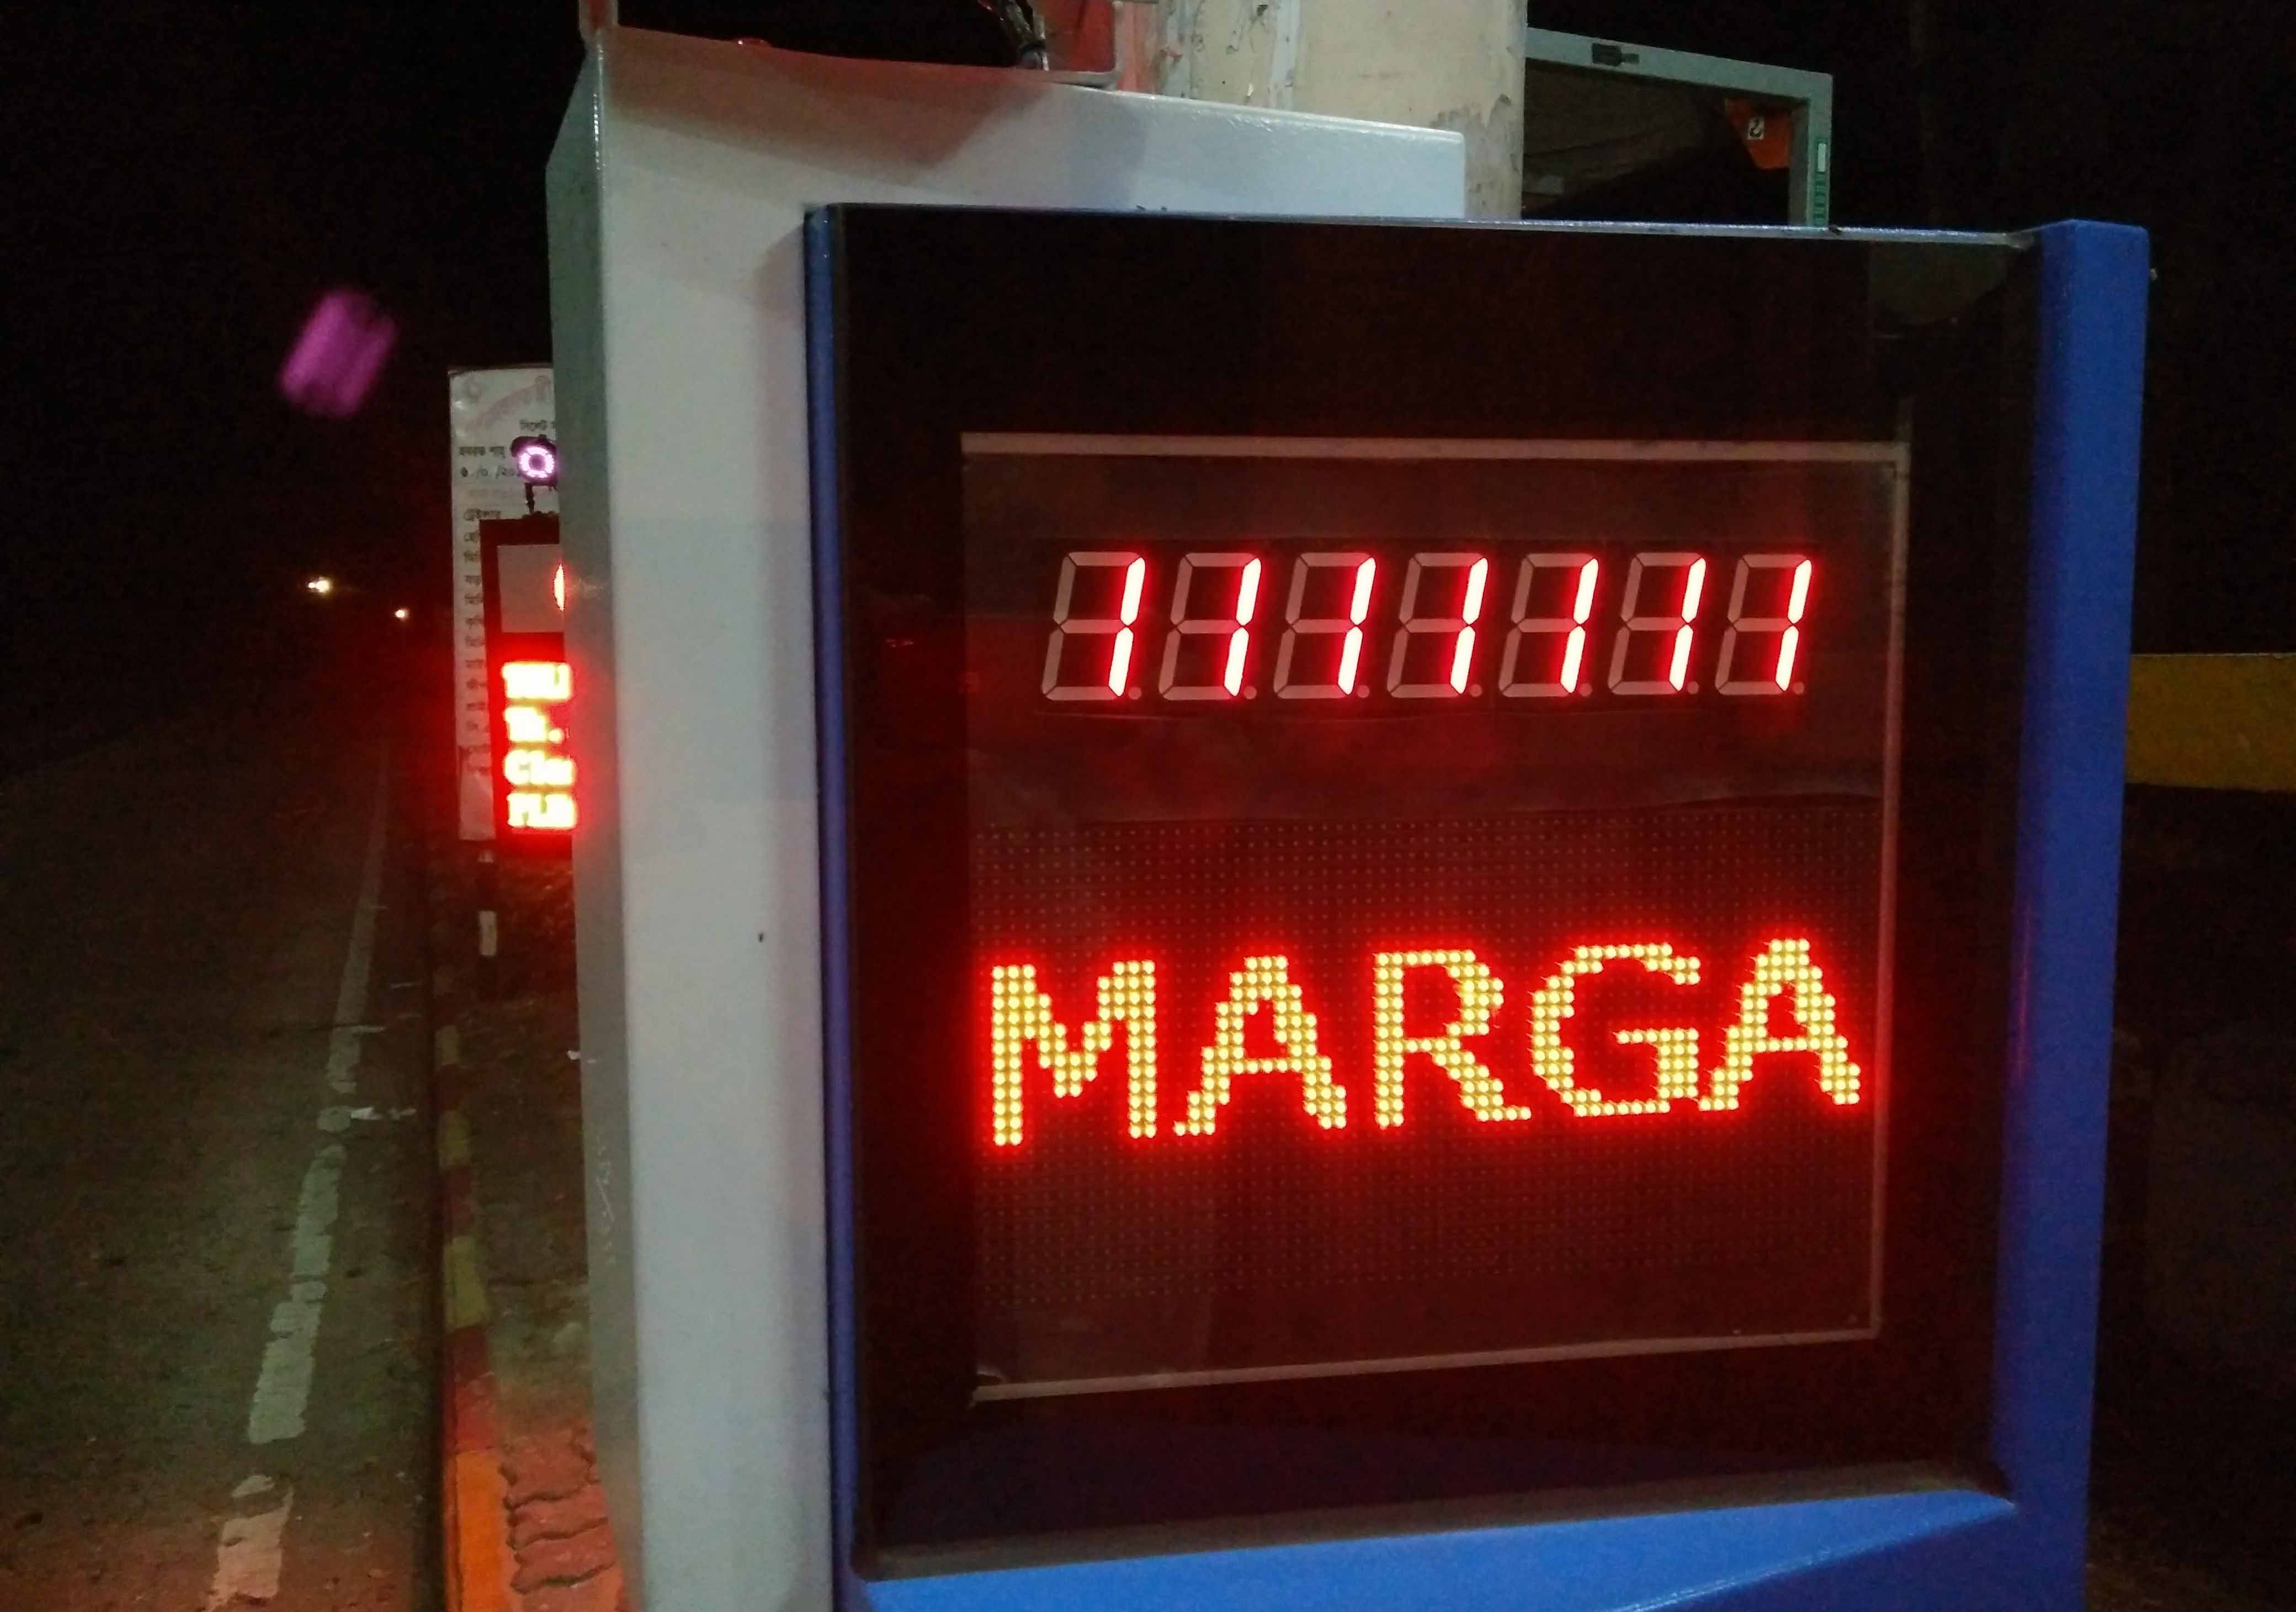 Marganet's Barrier with display for independent vehicle counter.